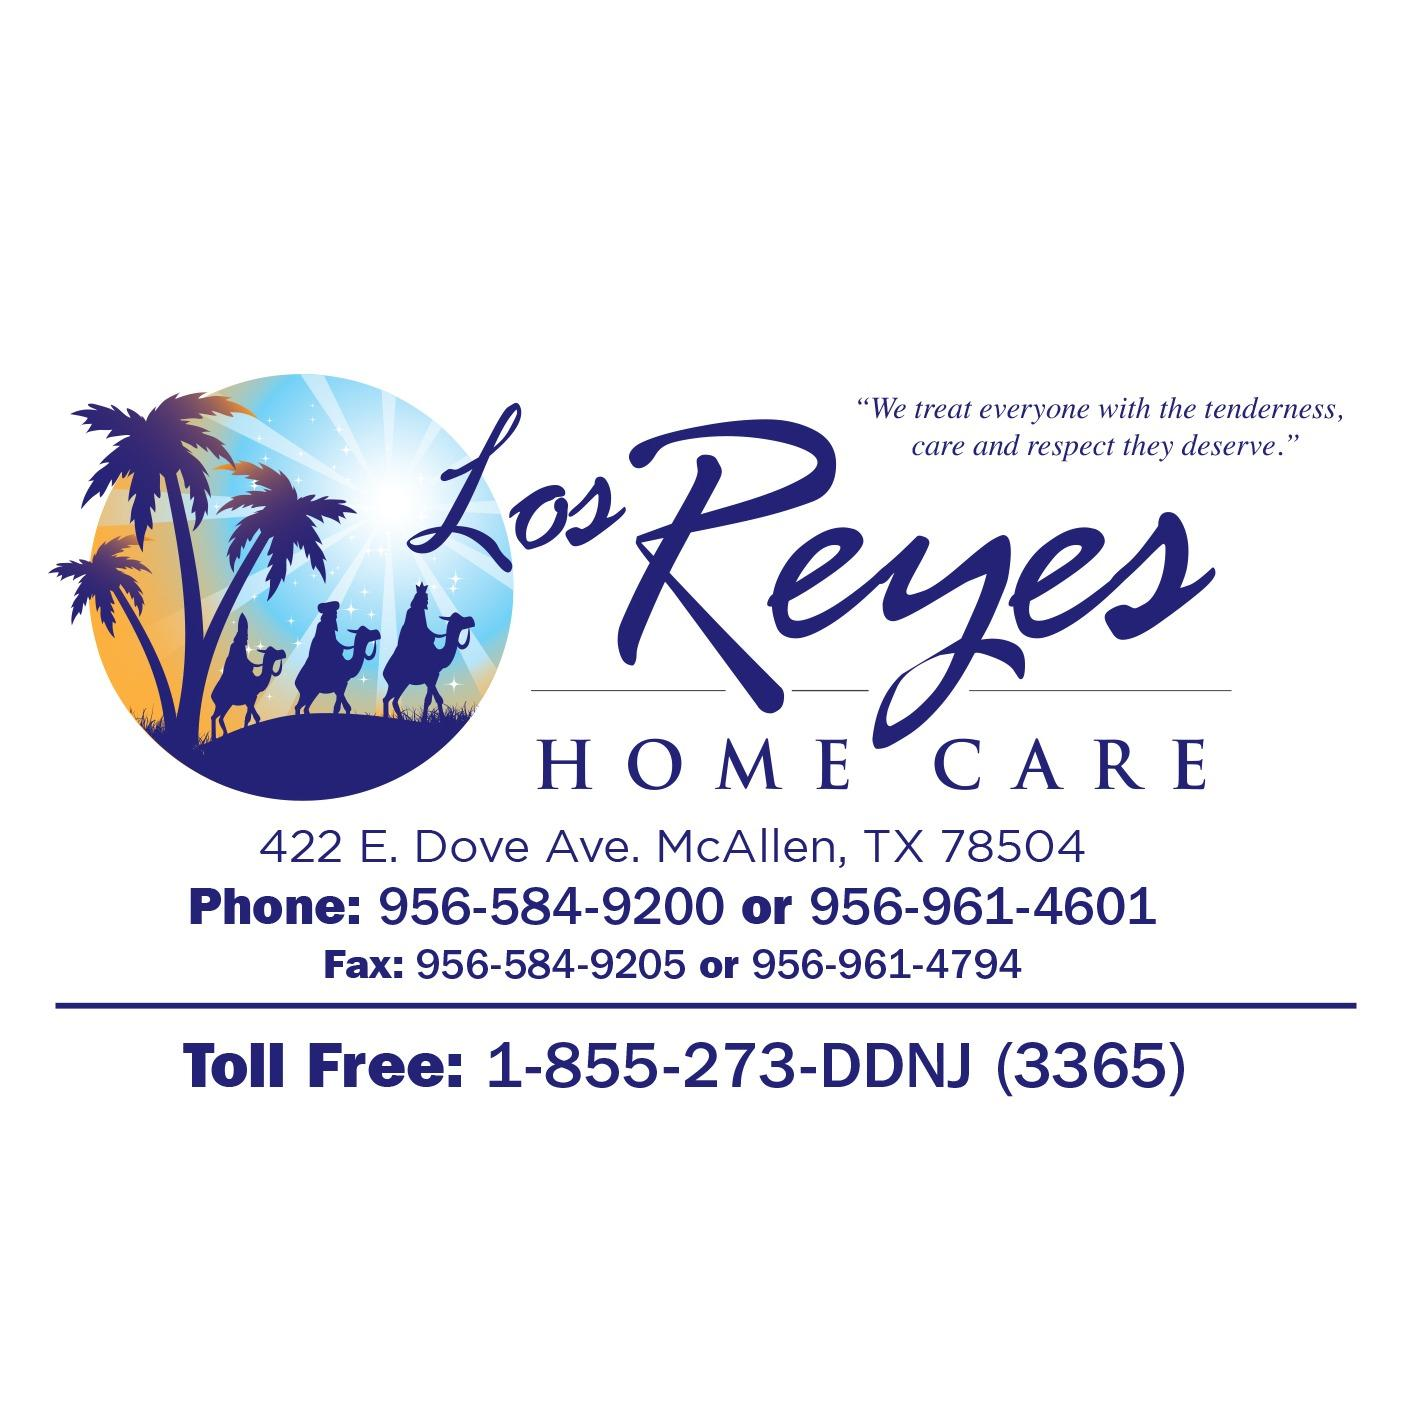 Los Reyes Home Care